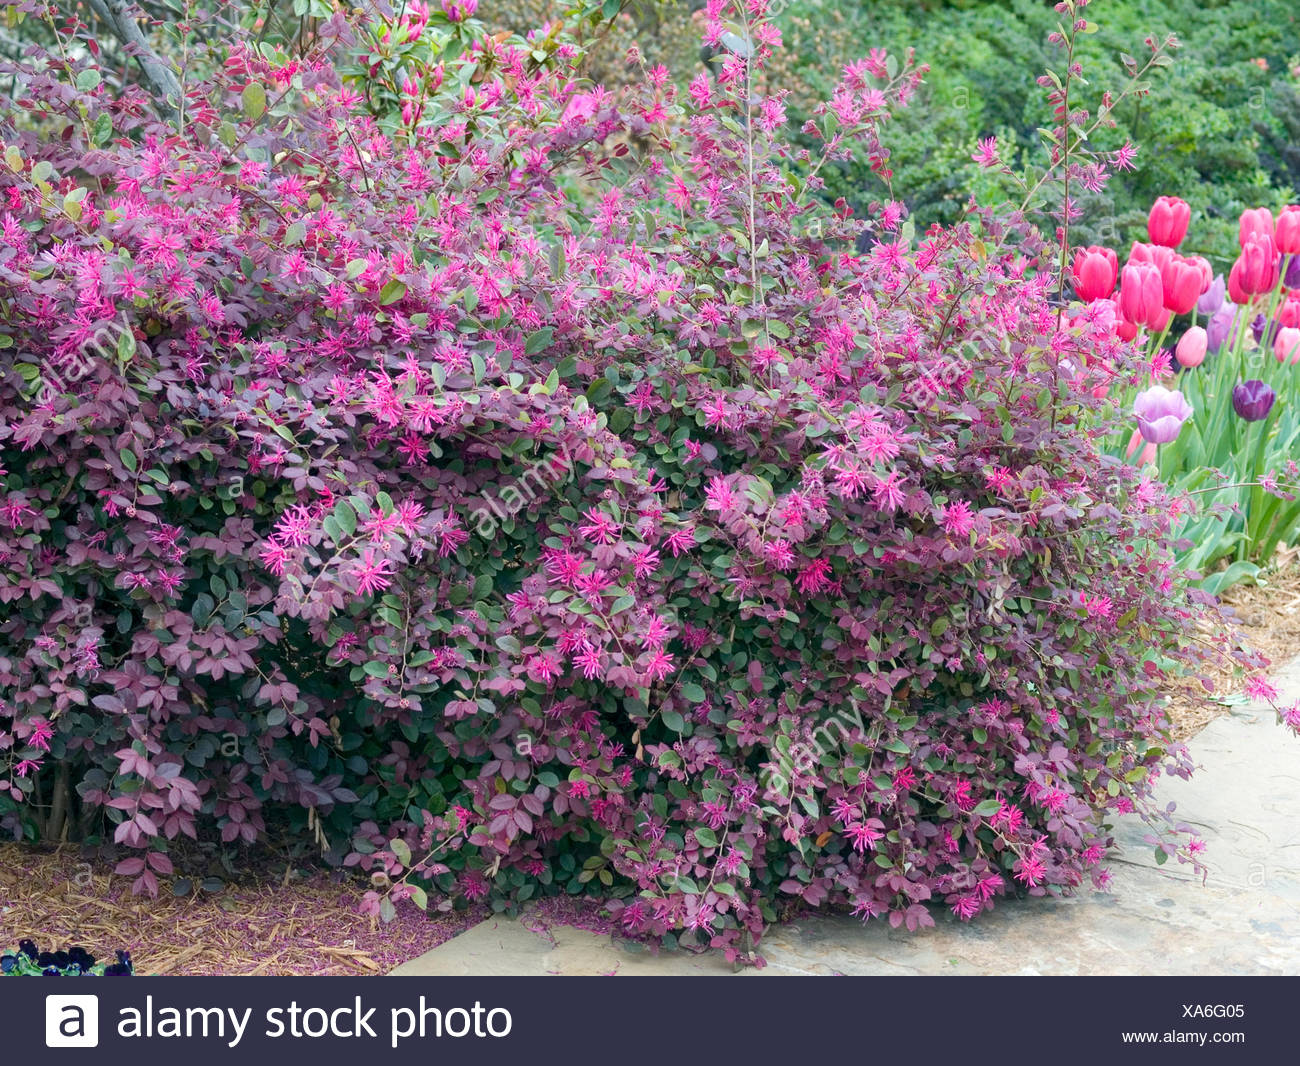 Loropetalum Purple Majesty Wwwtopsimagescom